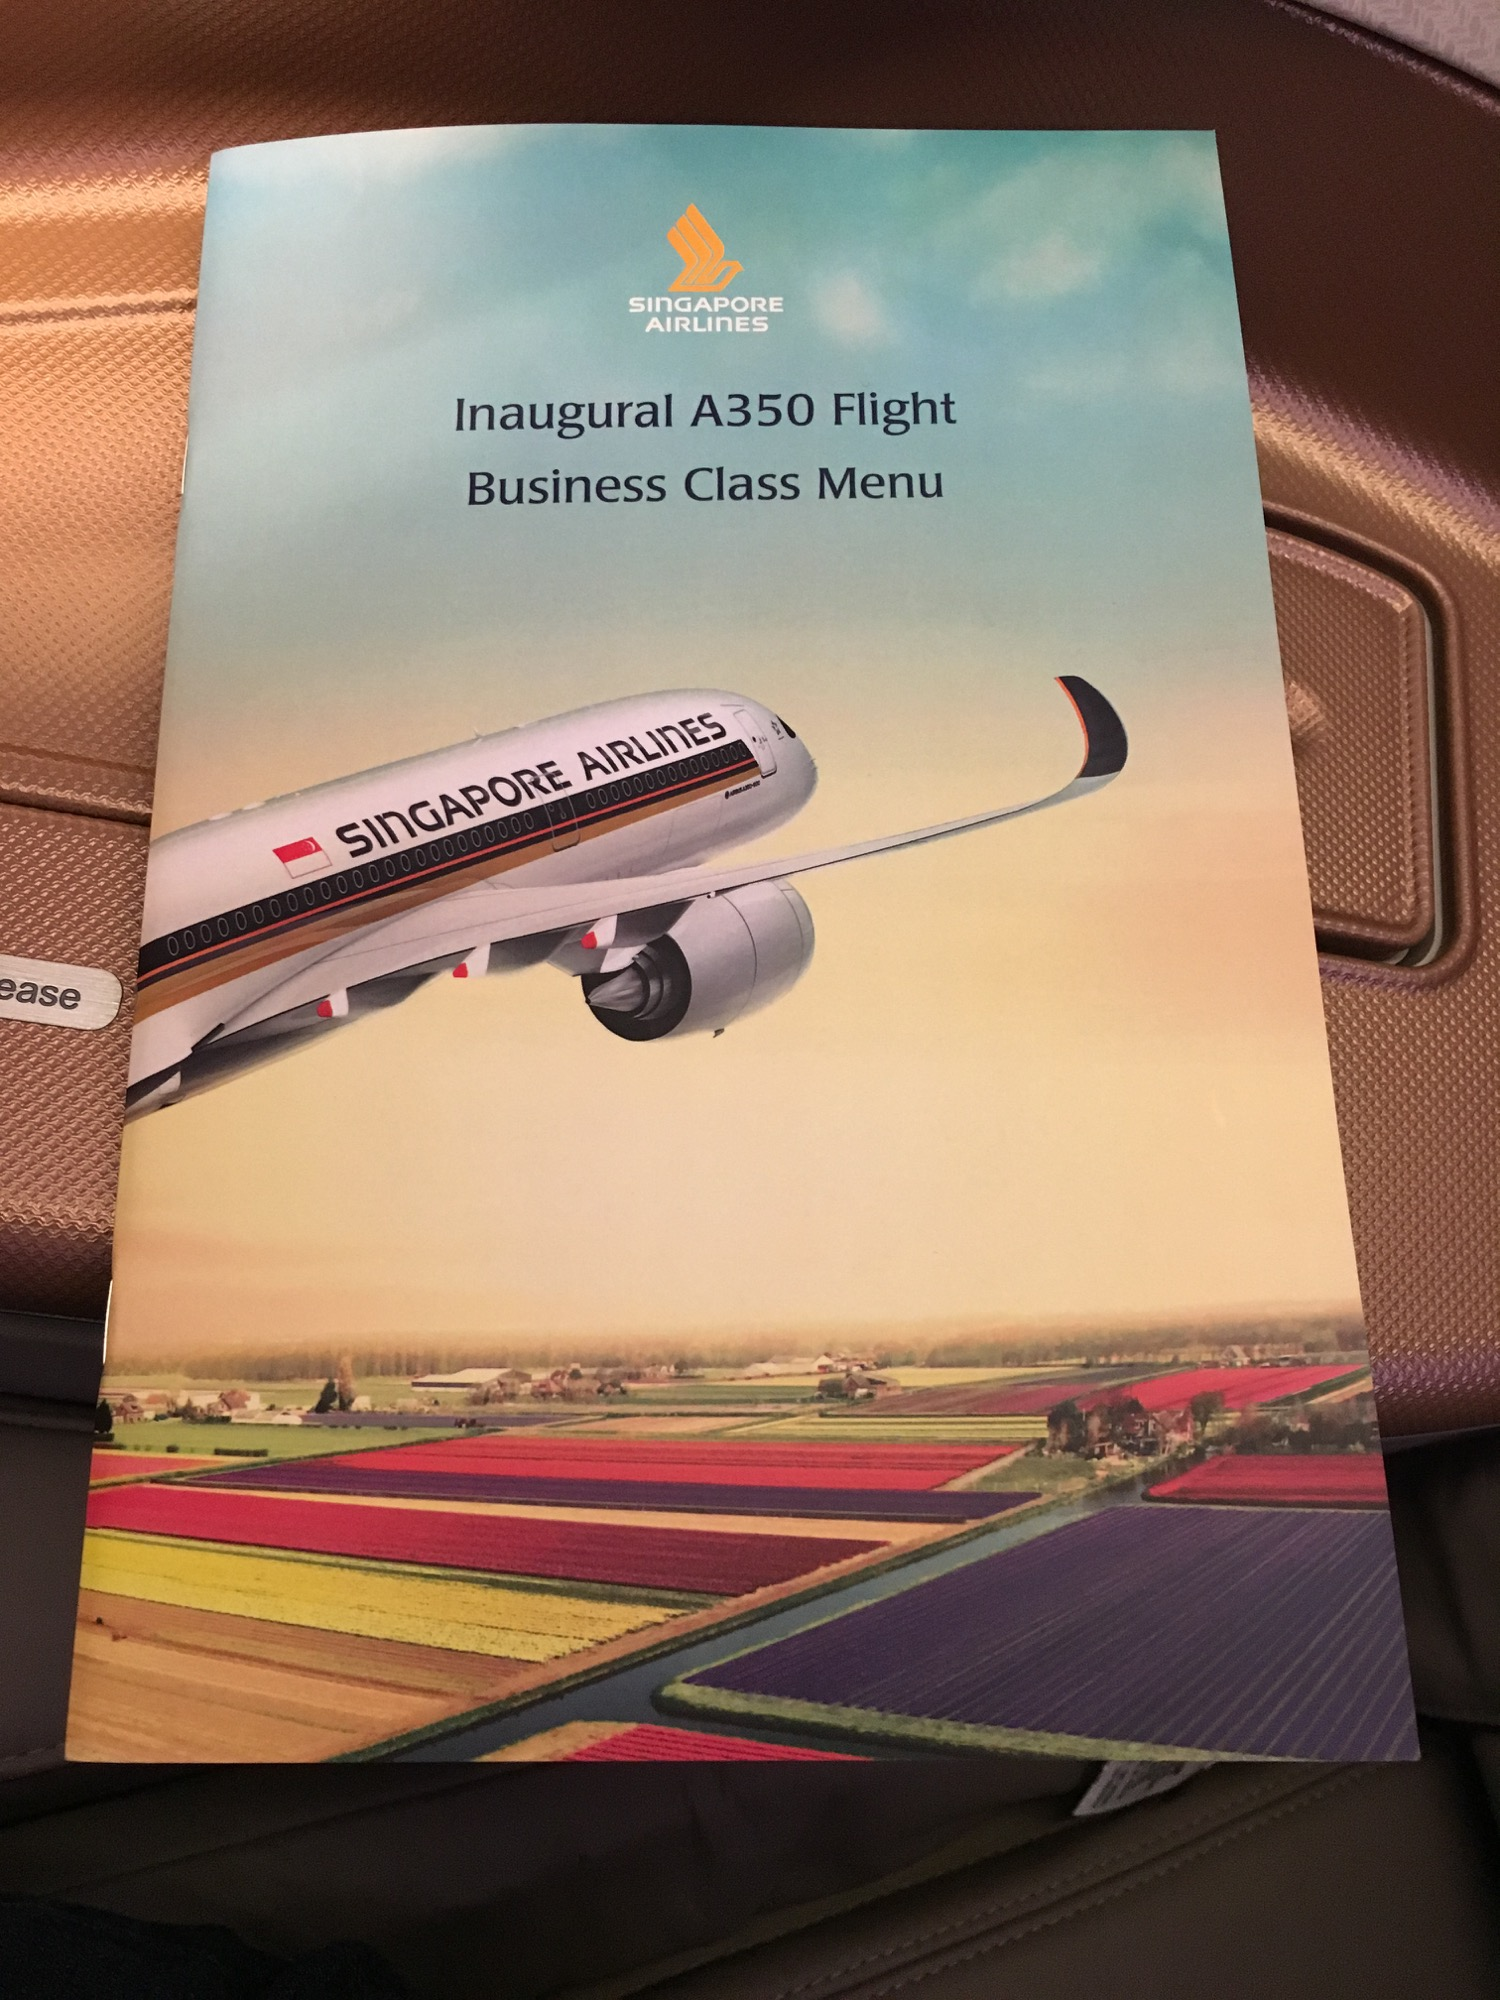 Singapore Airlines A350 Business Class Menu - 1